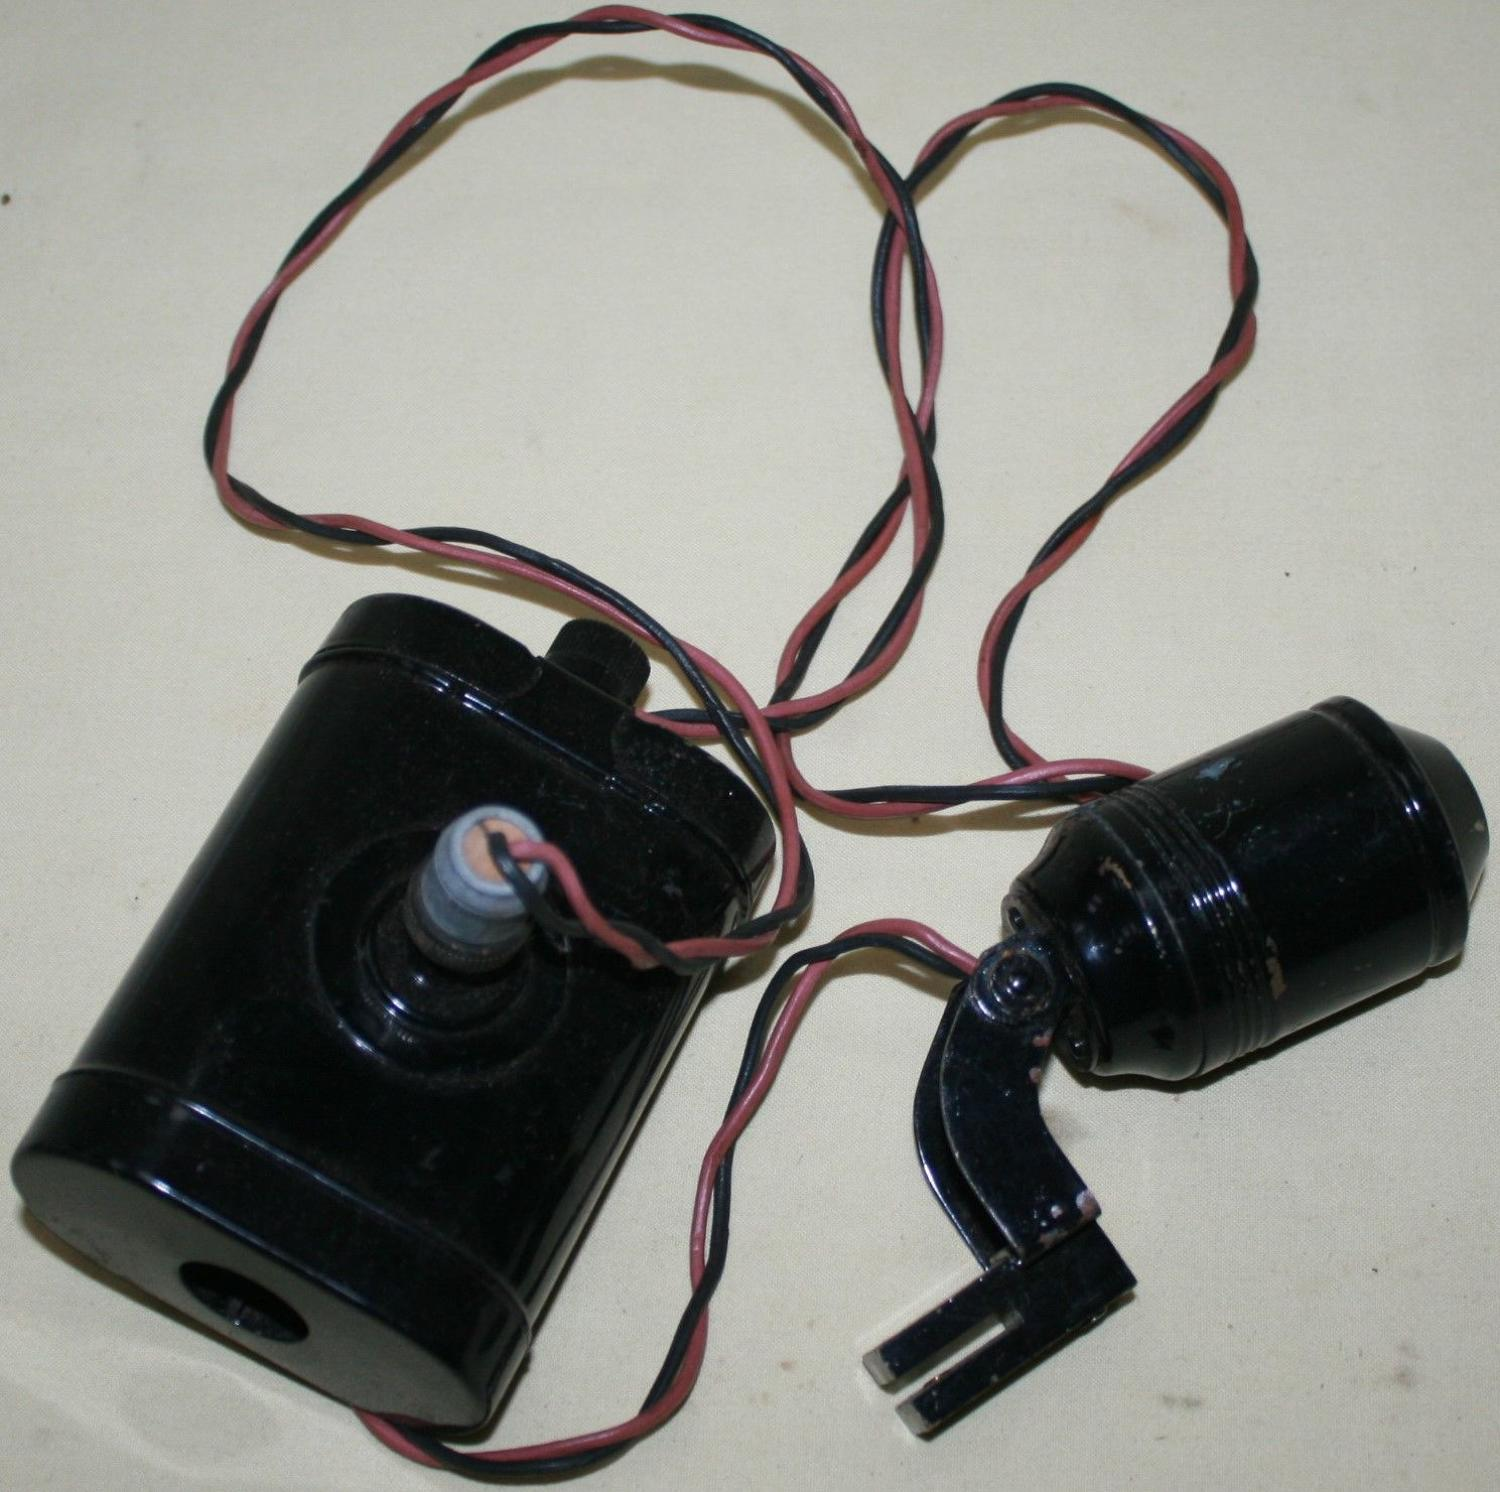 A WWII ARP SERVICES HELMET LAMP AND BATTERY PACK